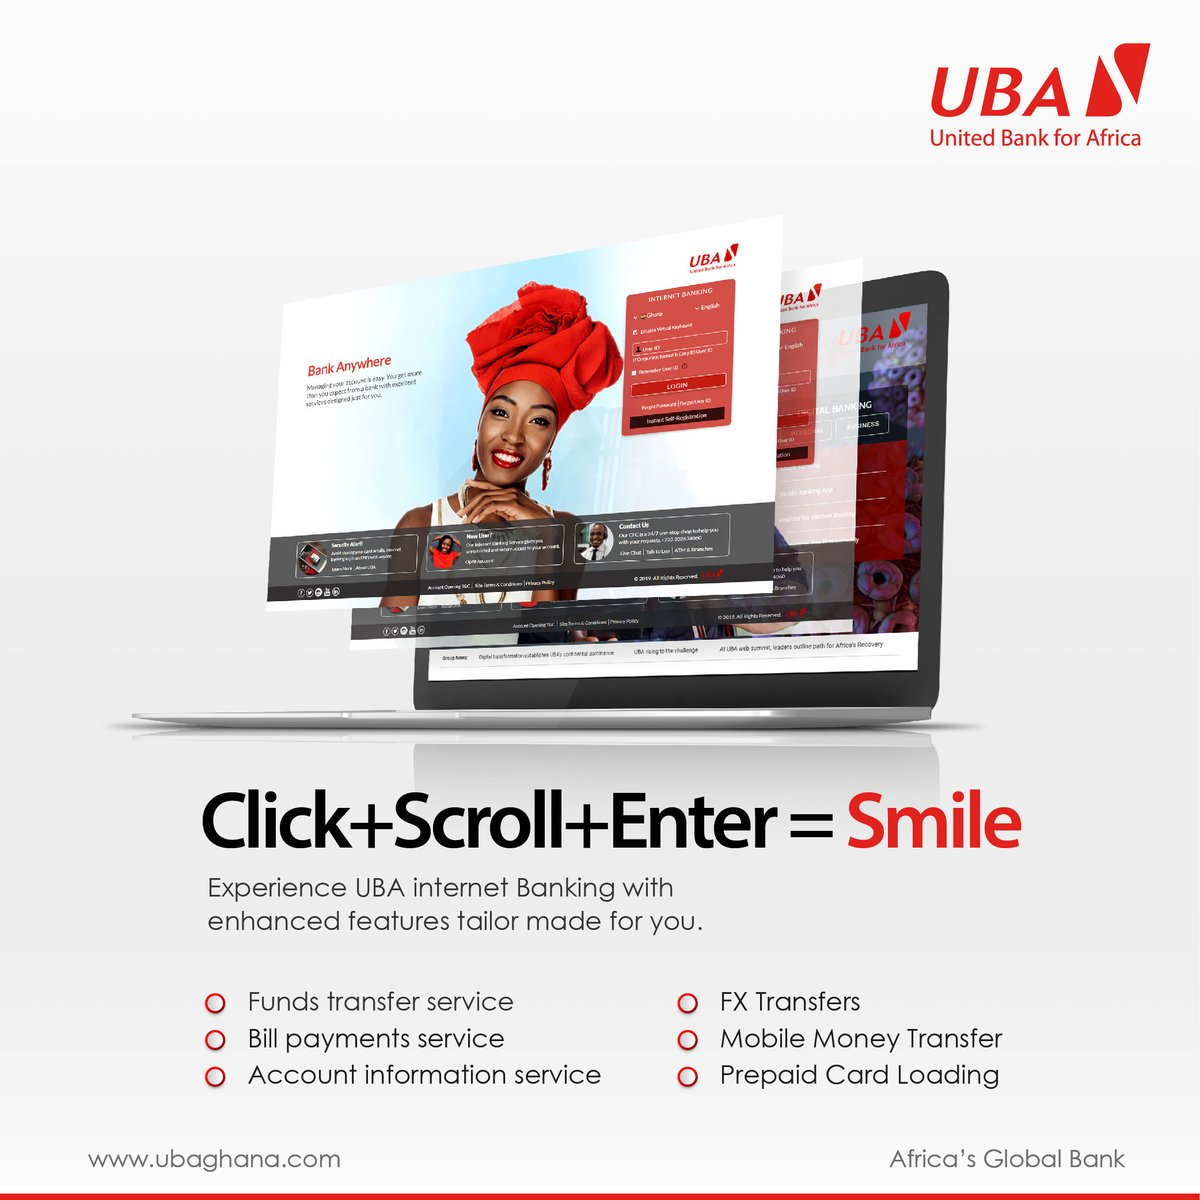 Experience the awesomeness of banking on the internet via the #UBAInternetBanking service.  Learn how to self enroll here: https://t.co/r9ziJ9zriQ Click here to get started: https://t.co/JsmFpOy8Rh #StaySafe #LeoMagic #AfricasGlobalBank https://t.co/ImM0RpA931